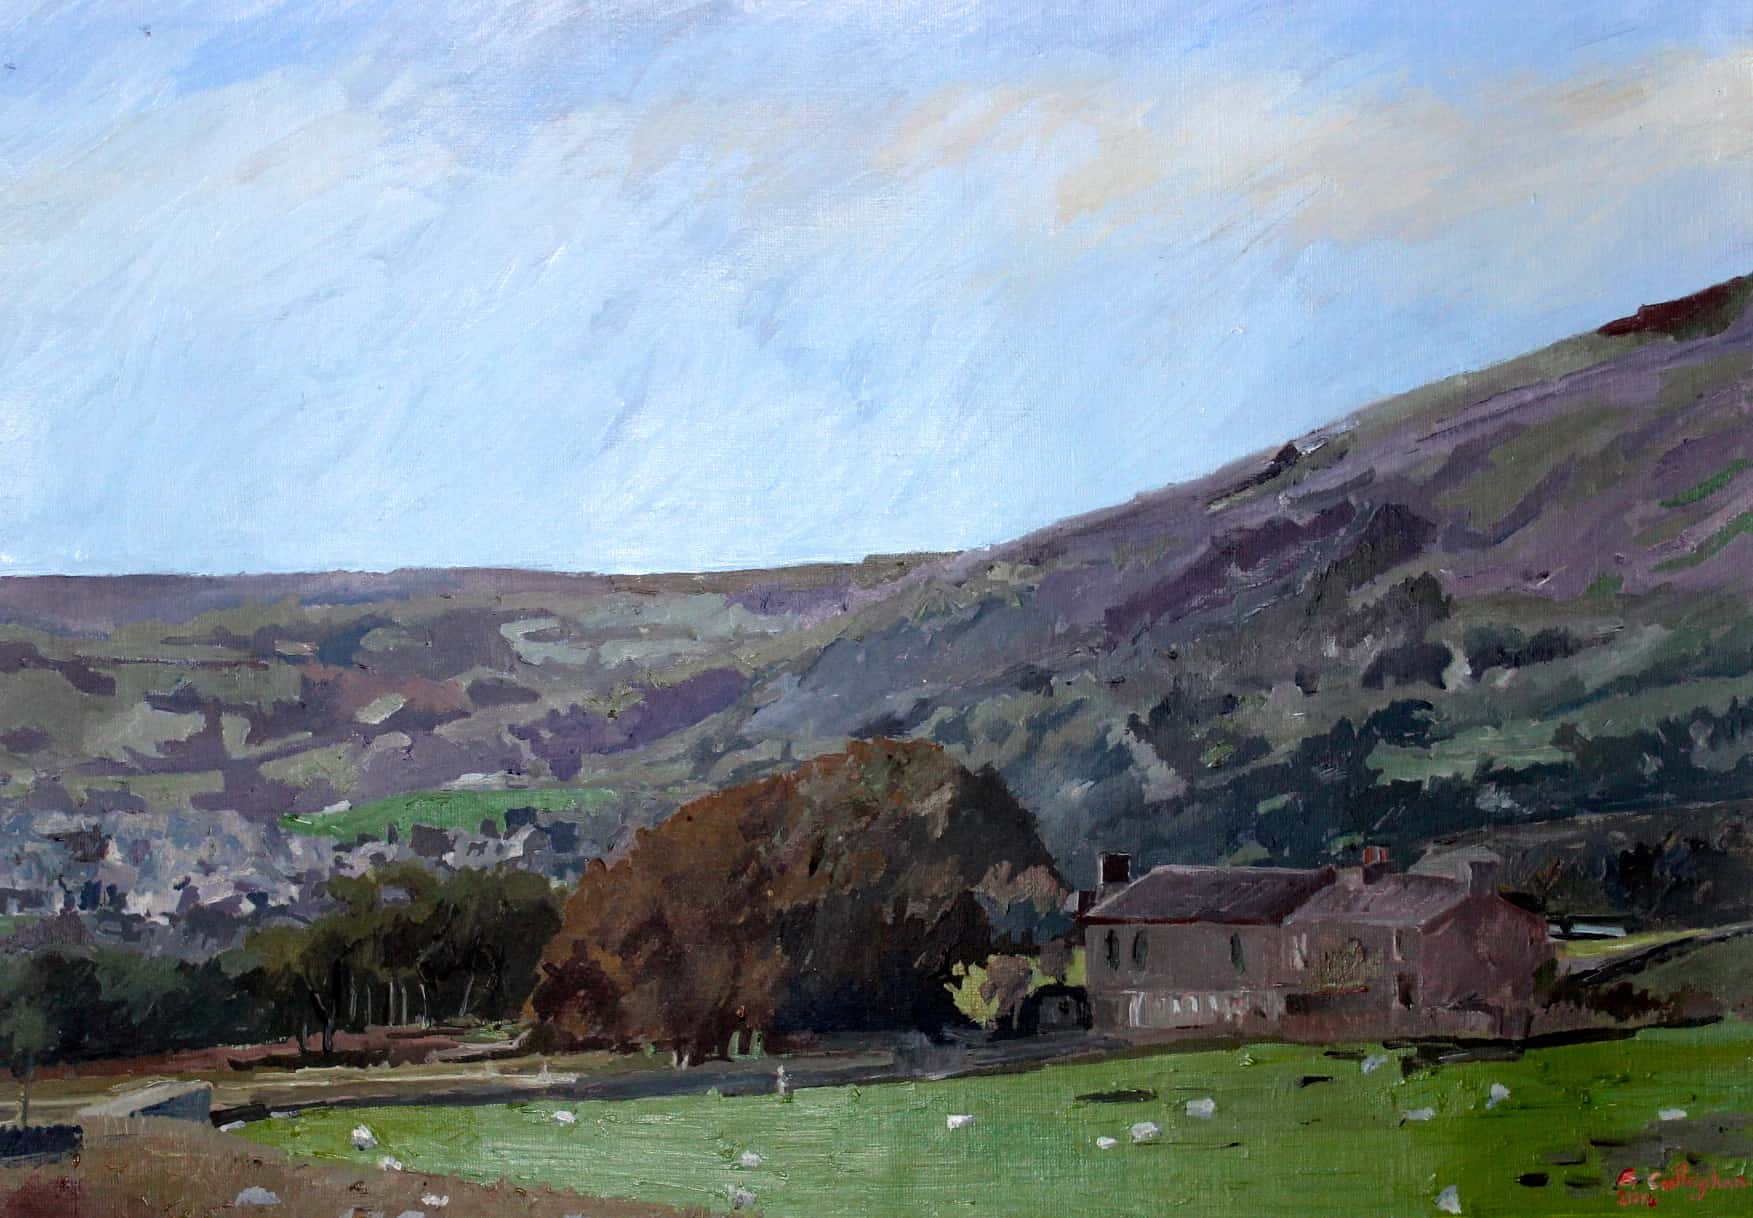 Yorkshire Dales Near Askrigg Painted by Frank Callaghan